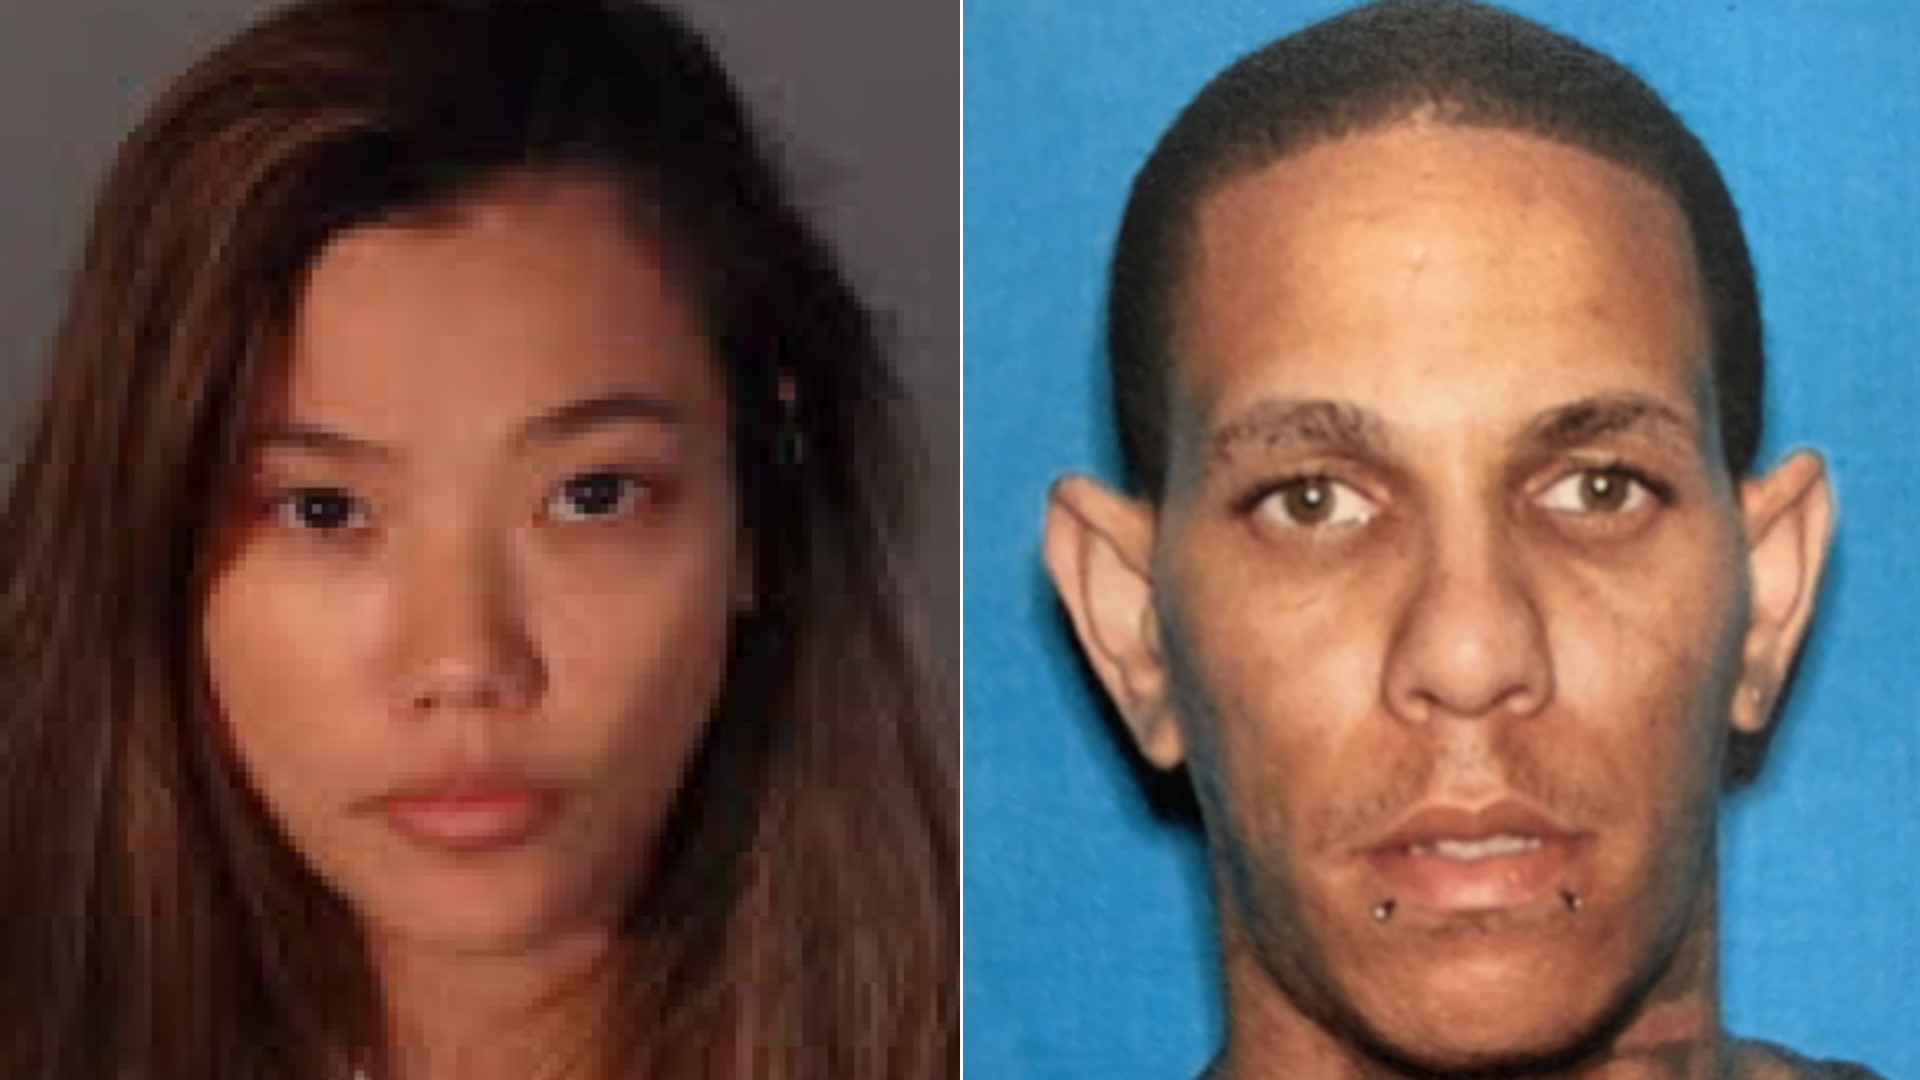 Suppatra Tansuvit, left, and Robert Carrasquillo are shown in photos released by LAPD on Aug. 19, 2019.